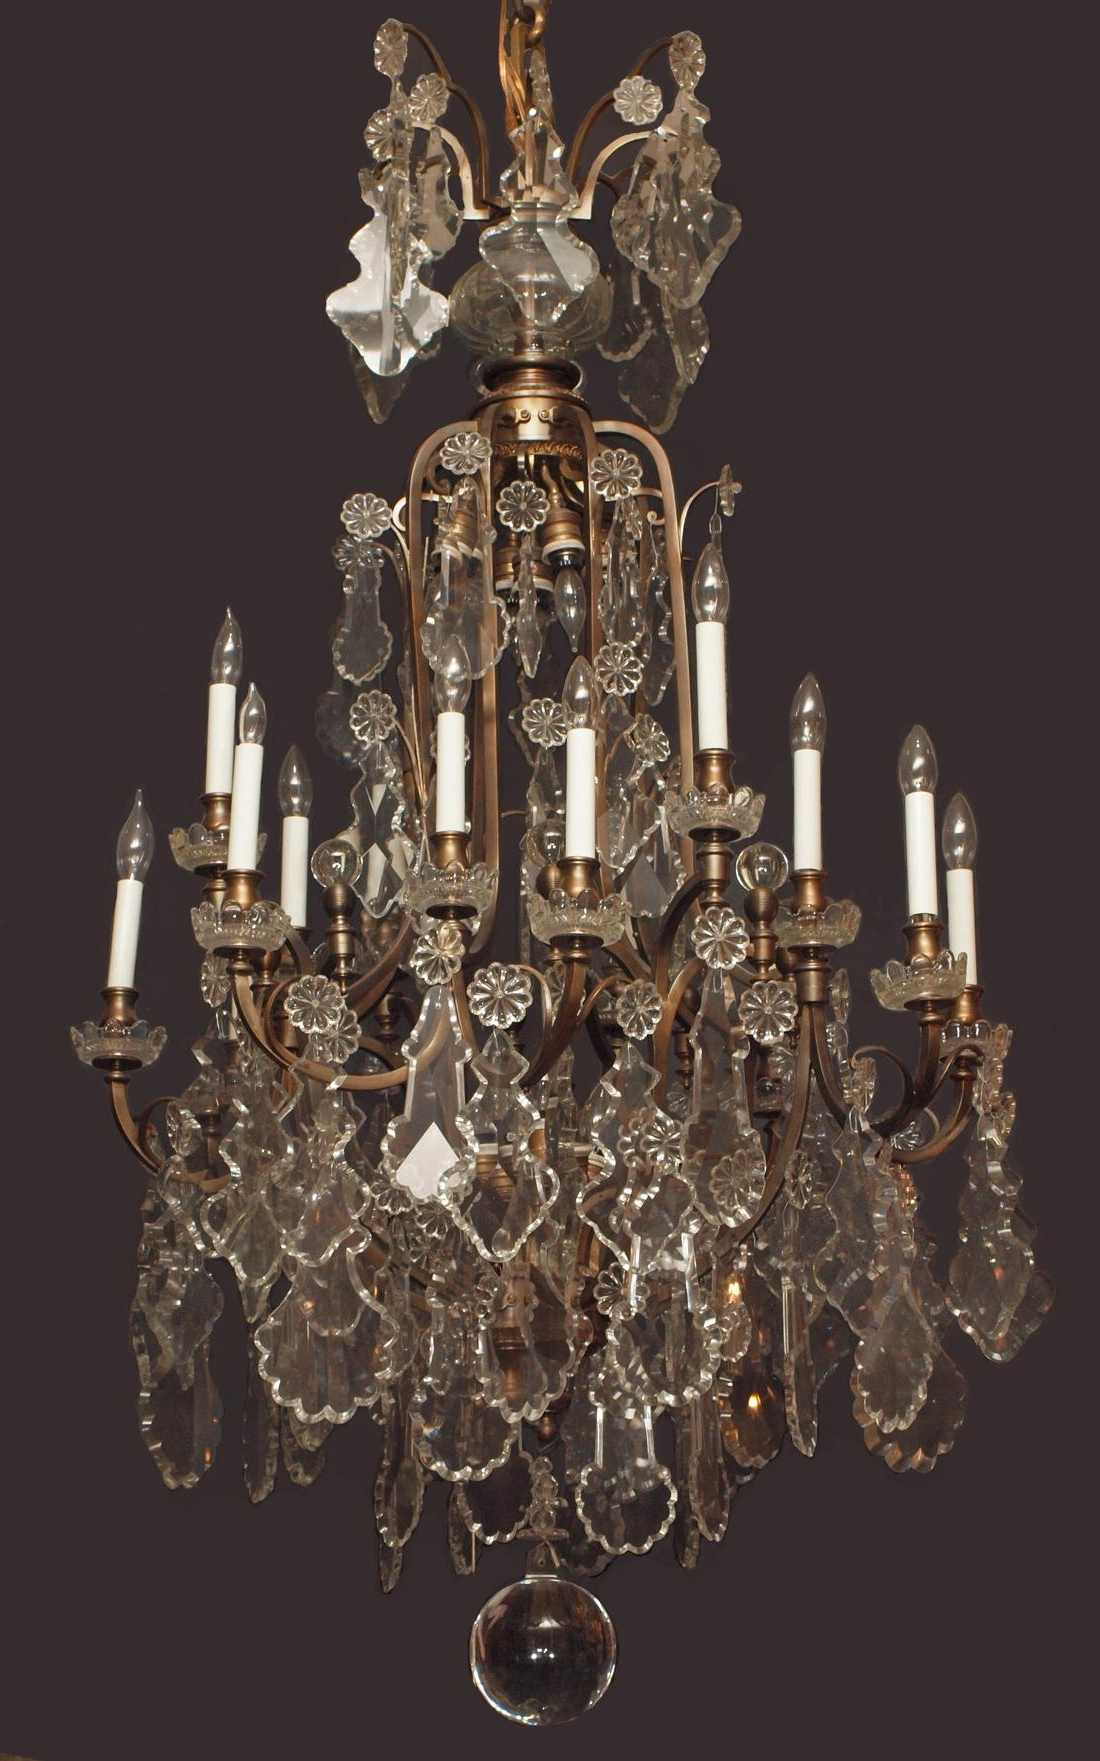 Newest Giant Chandeliers Pertaining To Giant Crystal Chandelier – Chandelier Designs (View 16 of 20)